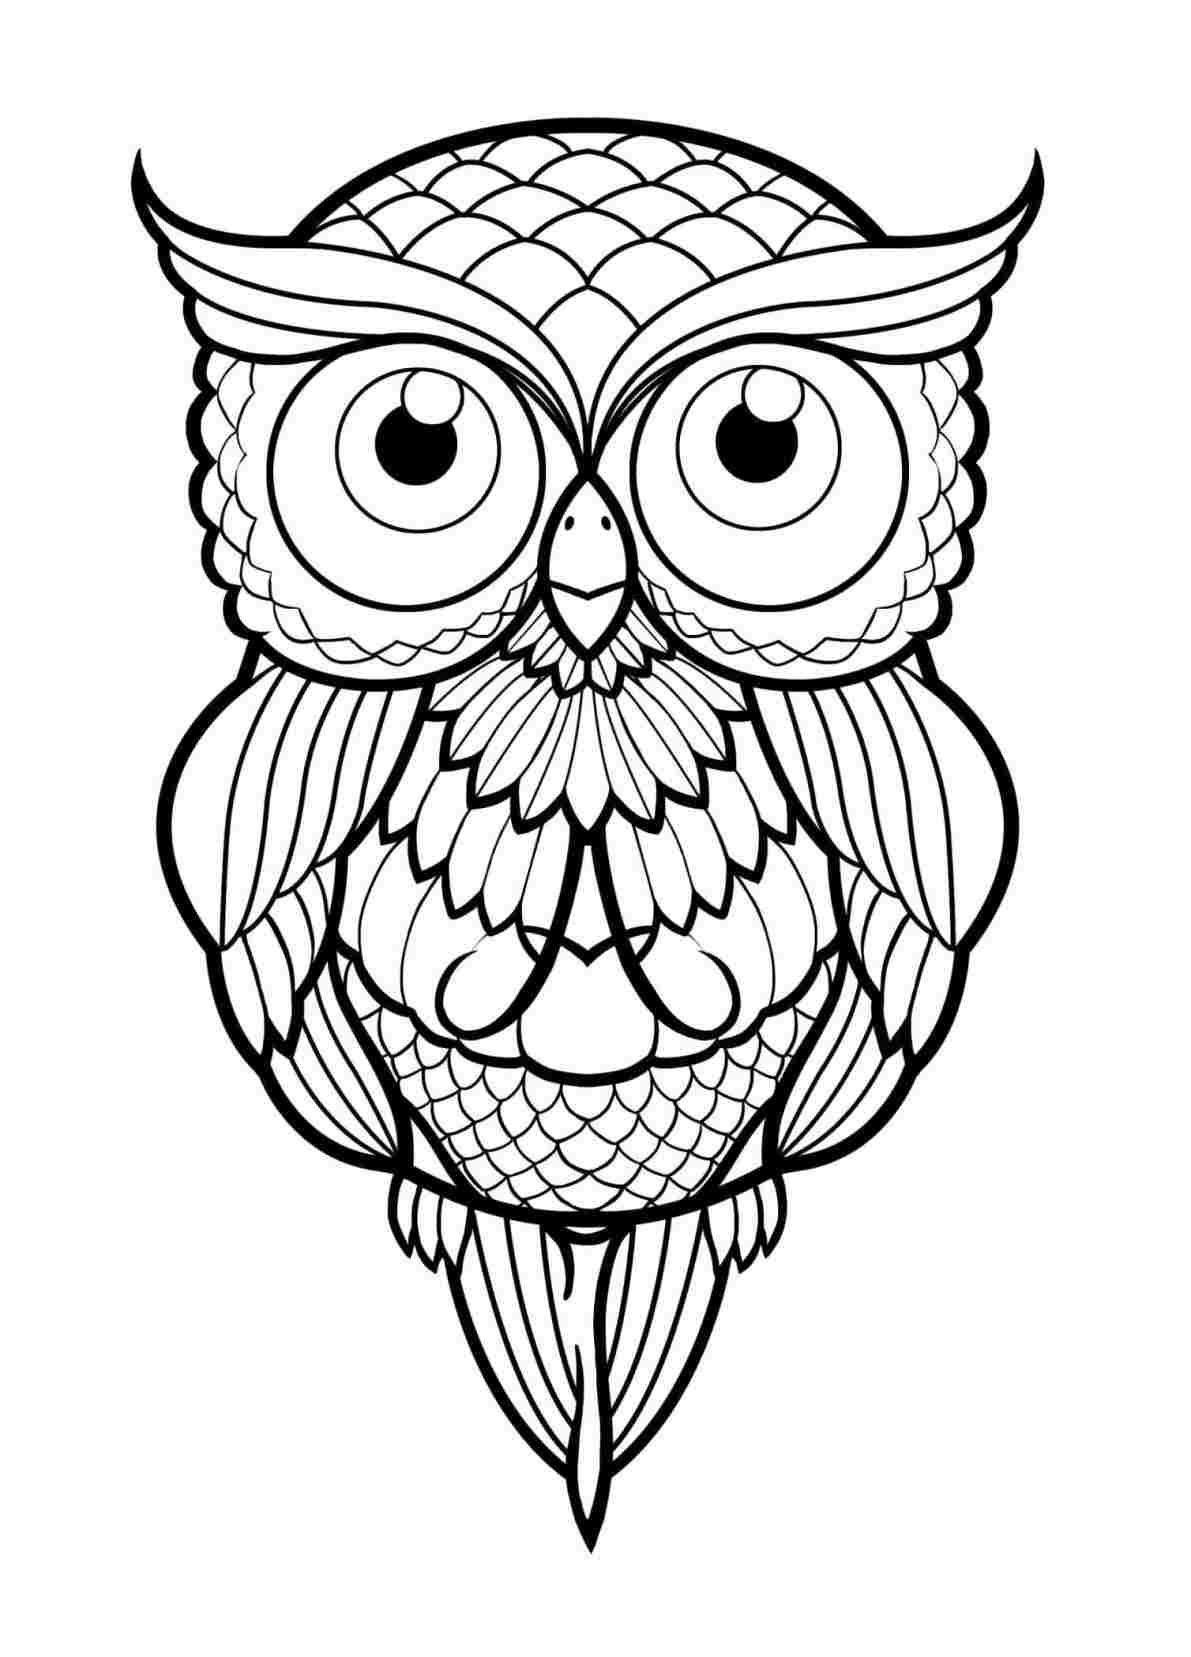 1191x1657 Easy Owl Drawing Simple Cute At Getscom Free For Personal Use